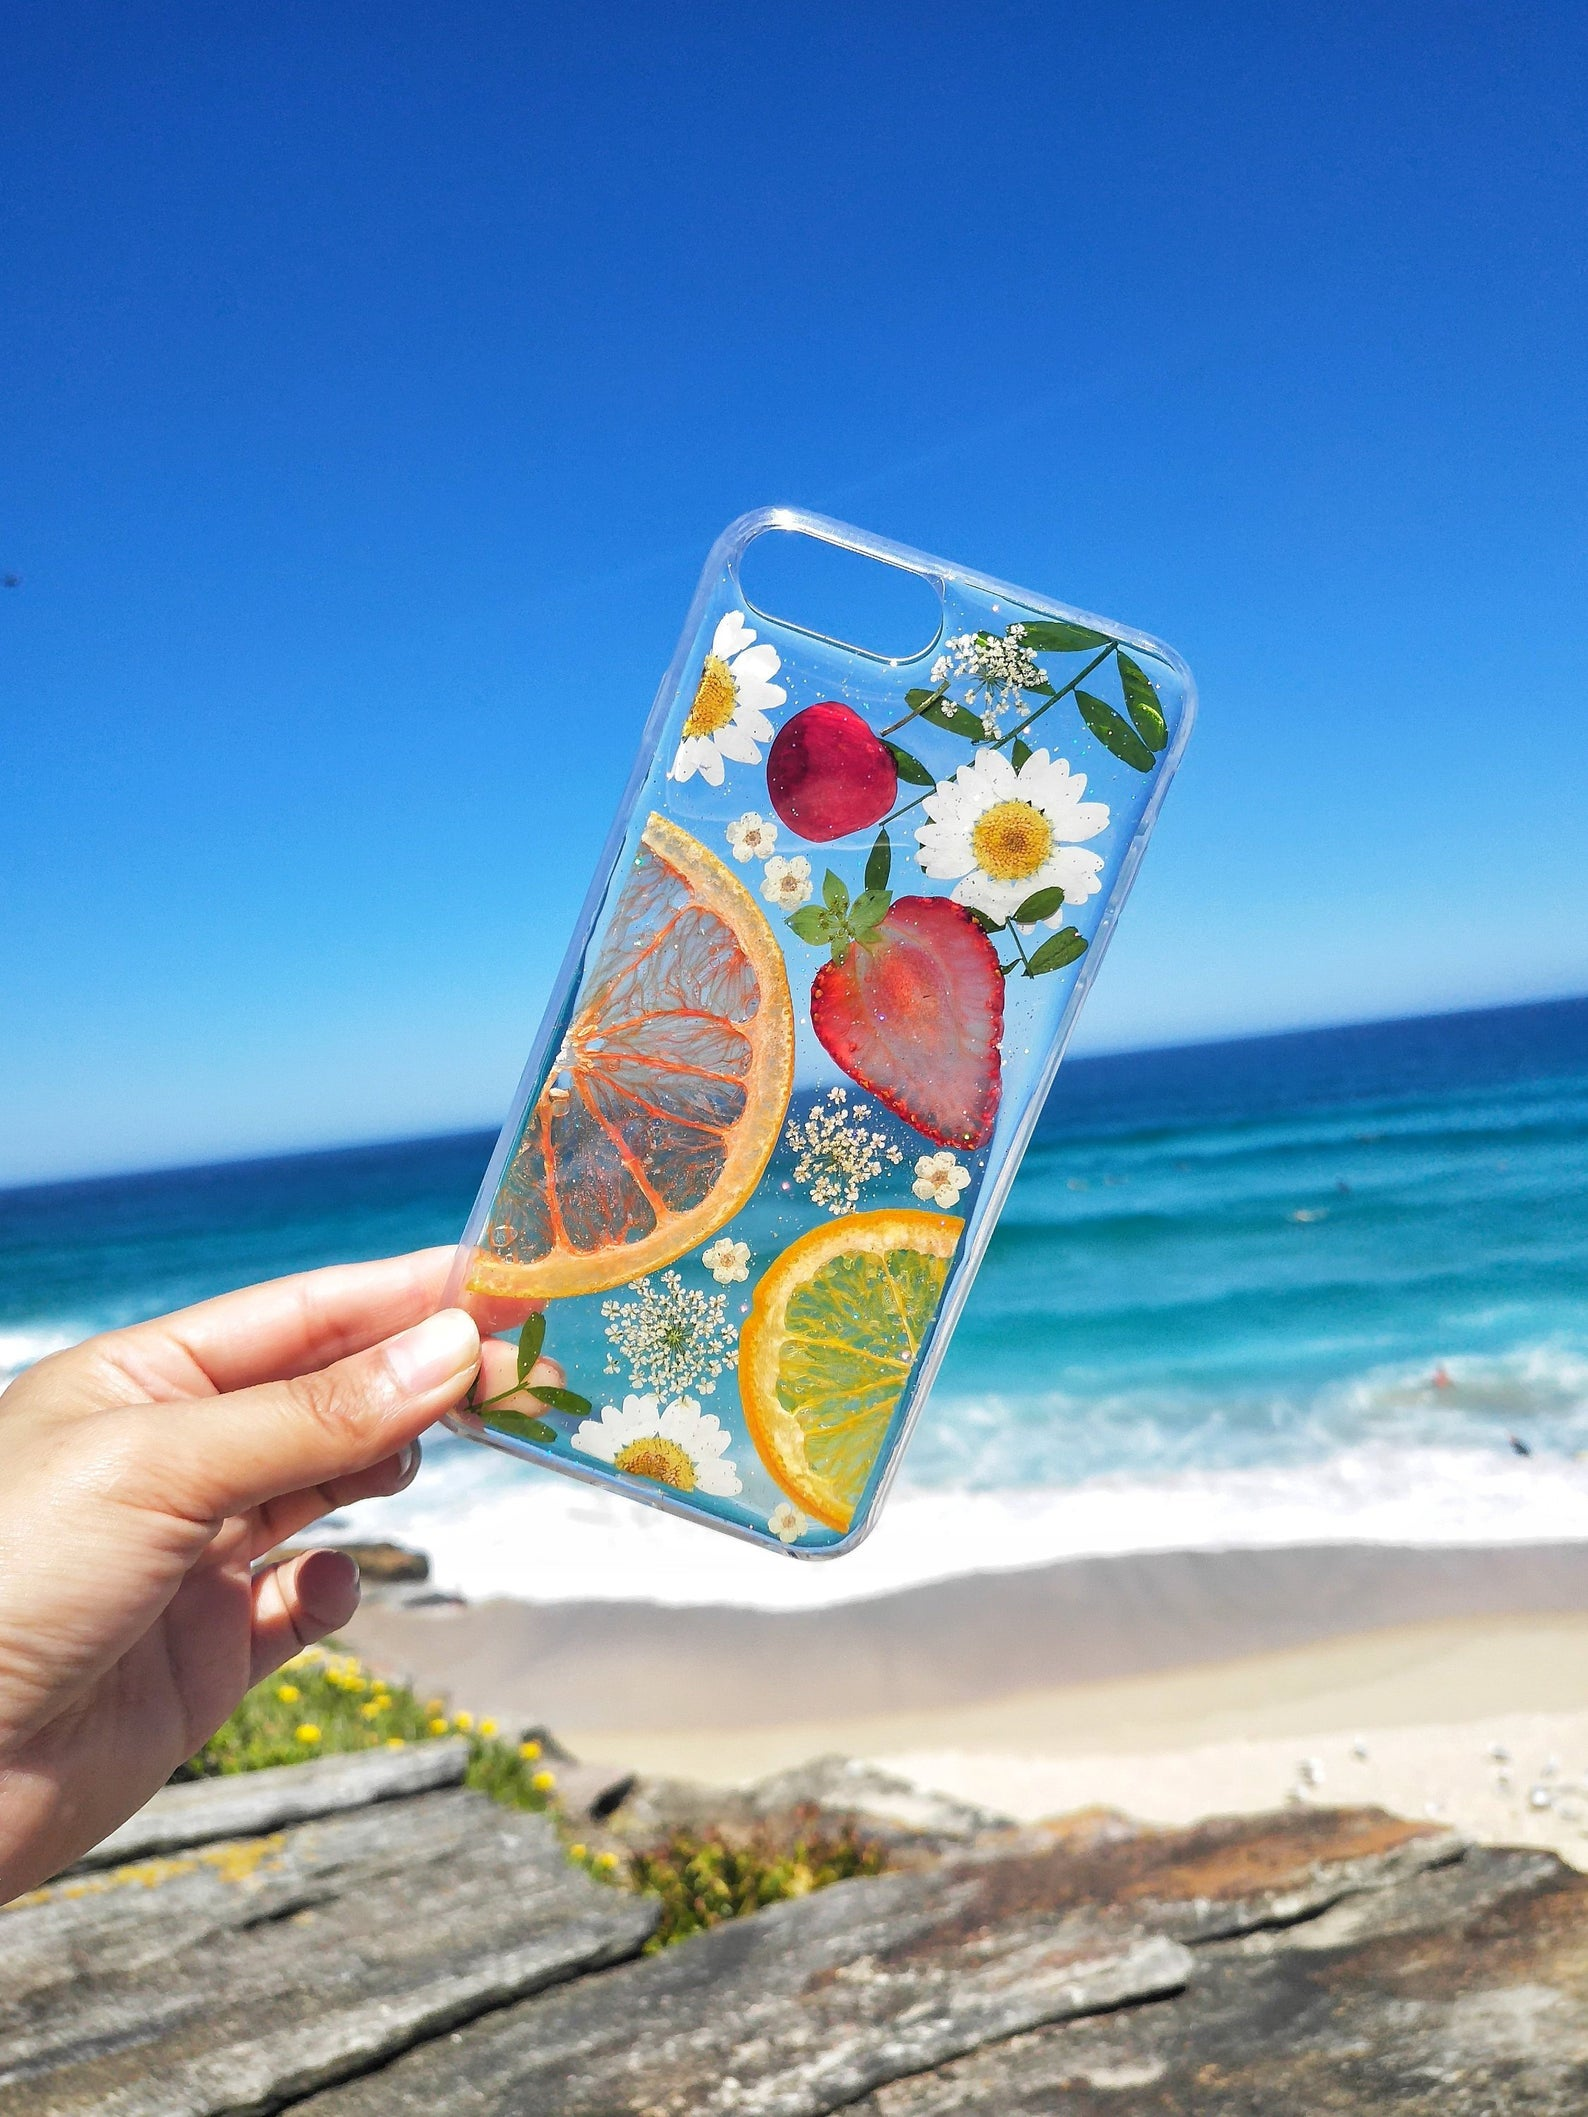 Iphone 11 pro max/Pressed Flower case/Pressed Fruit case